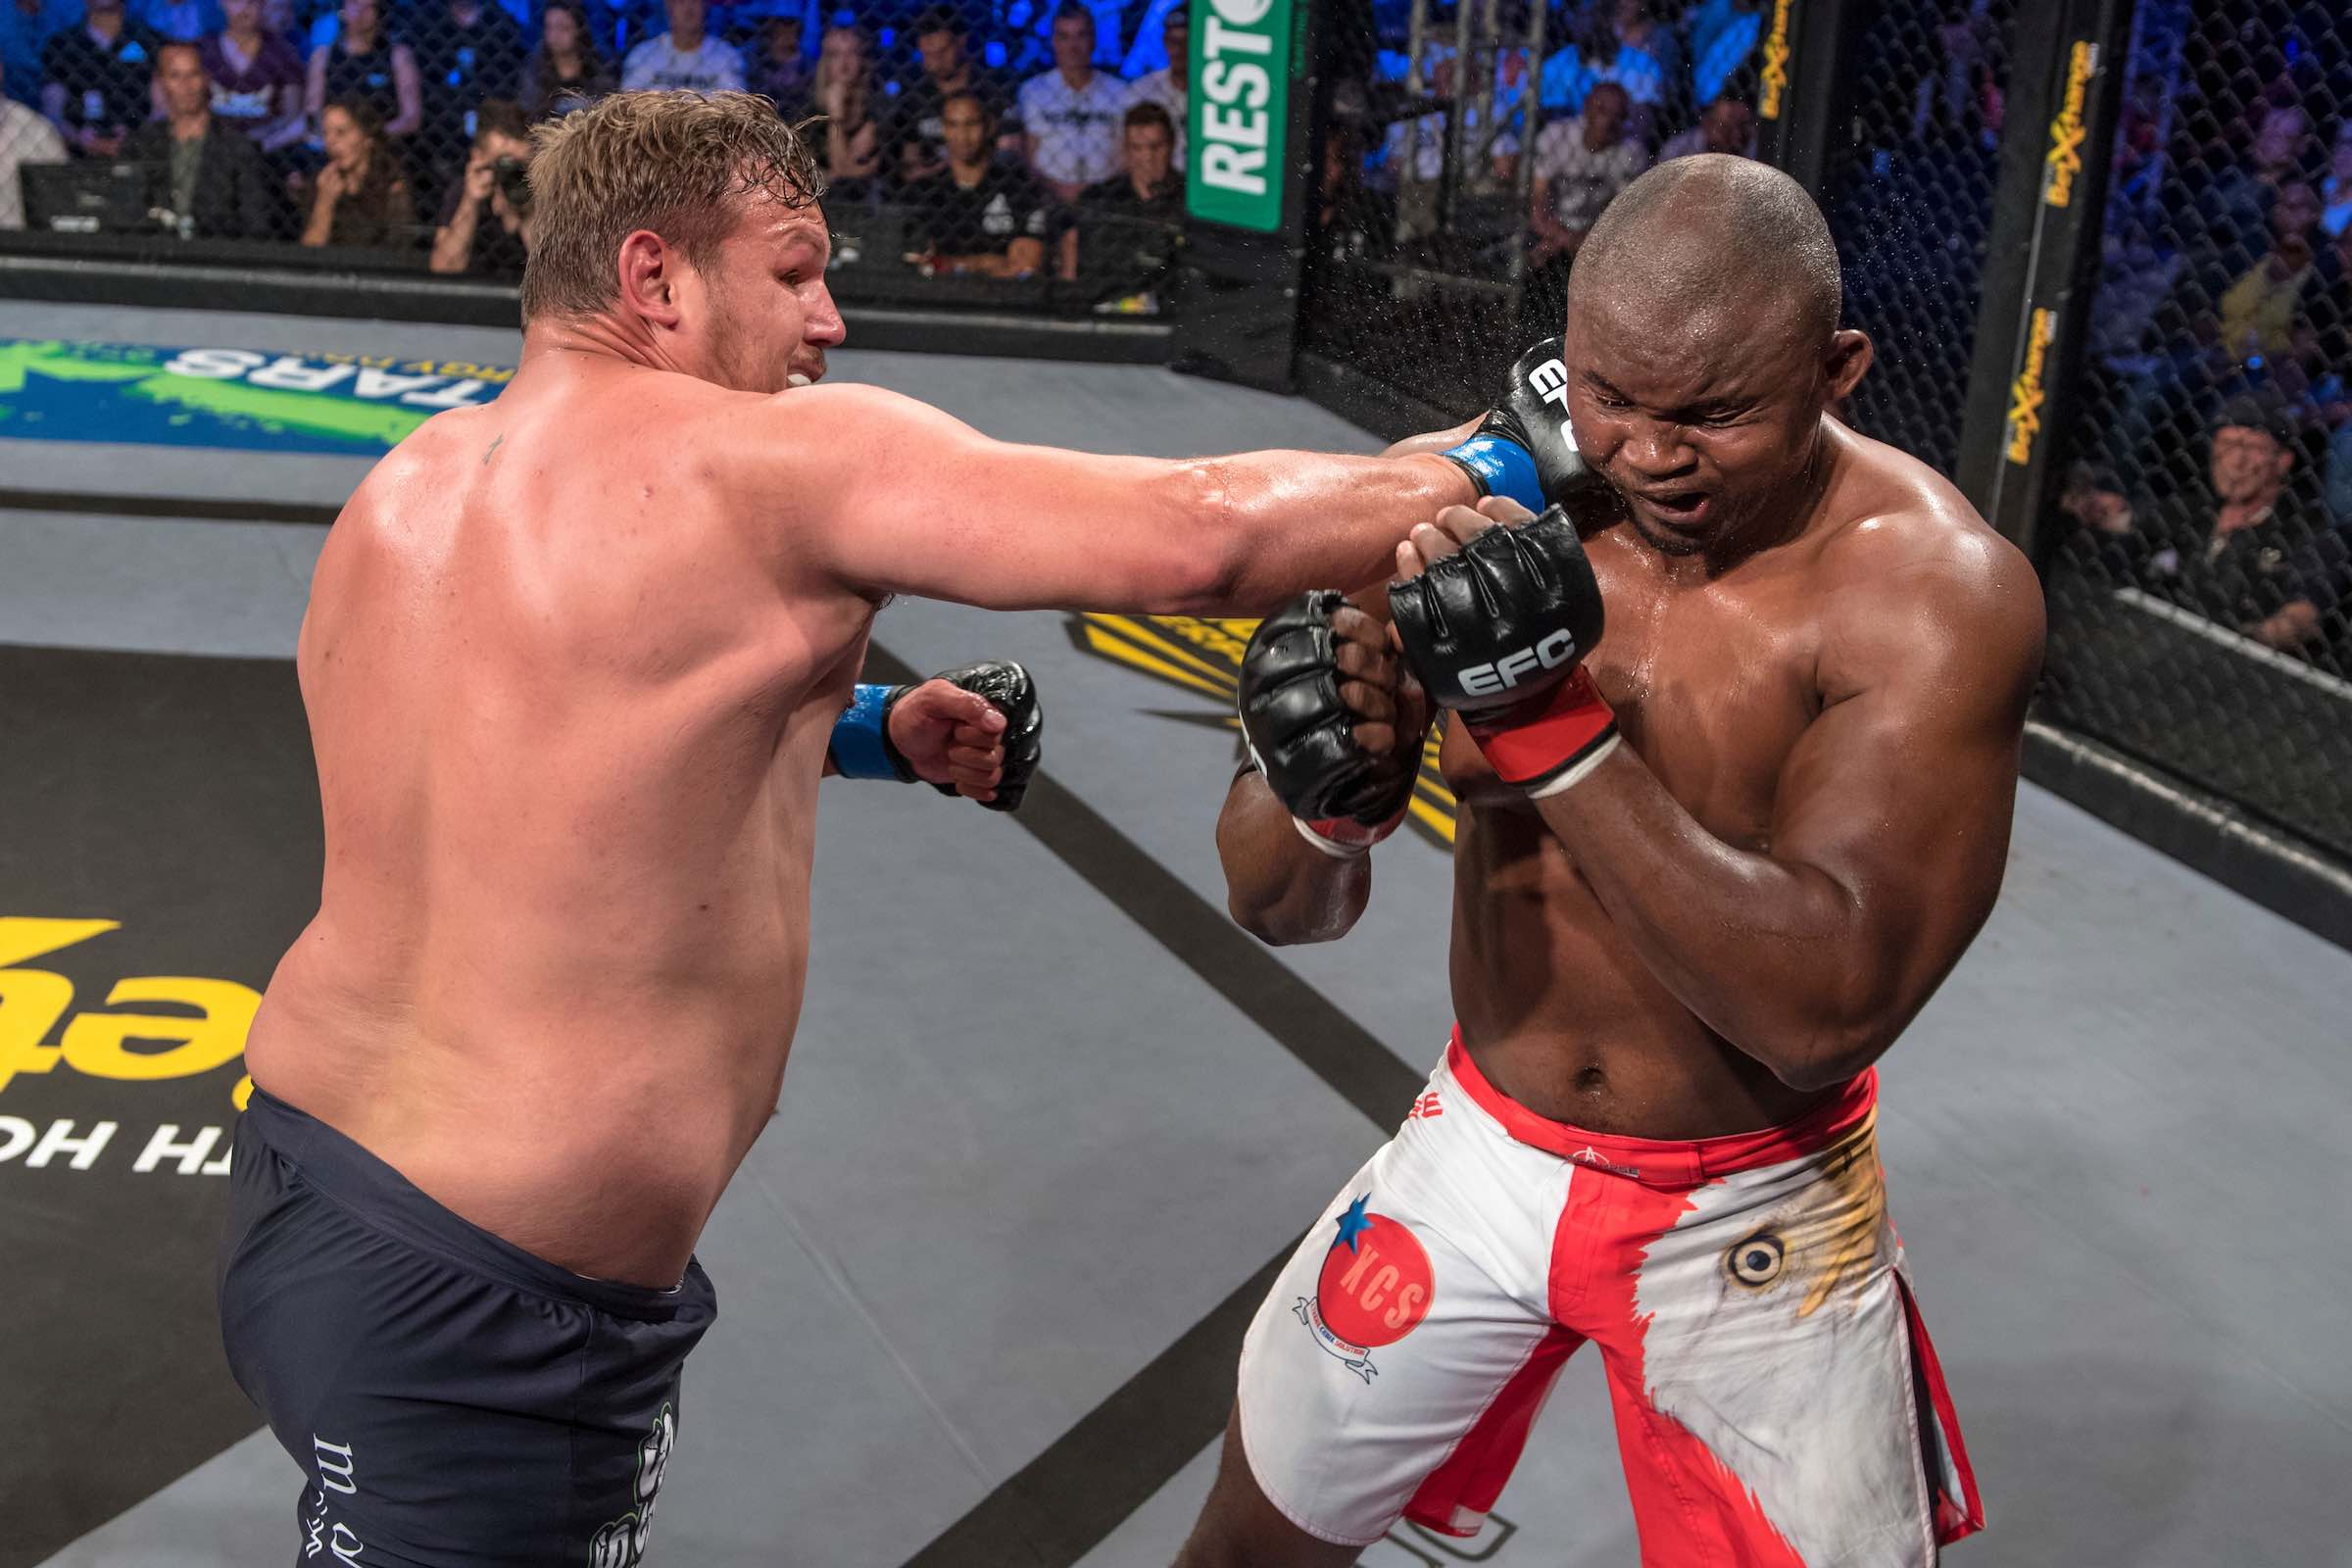 Wessel Mostert vs Ricky Misholas